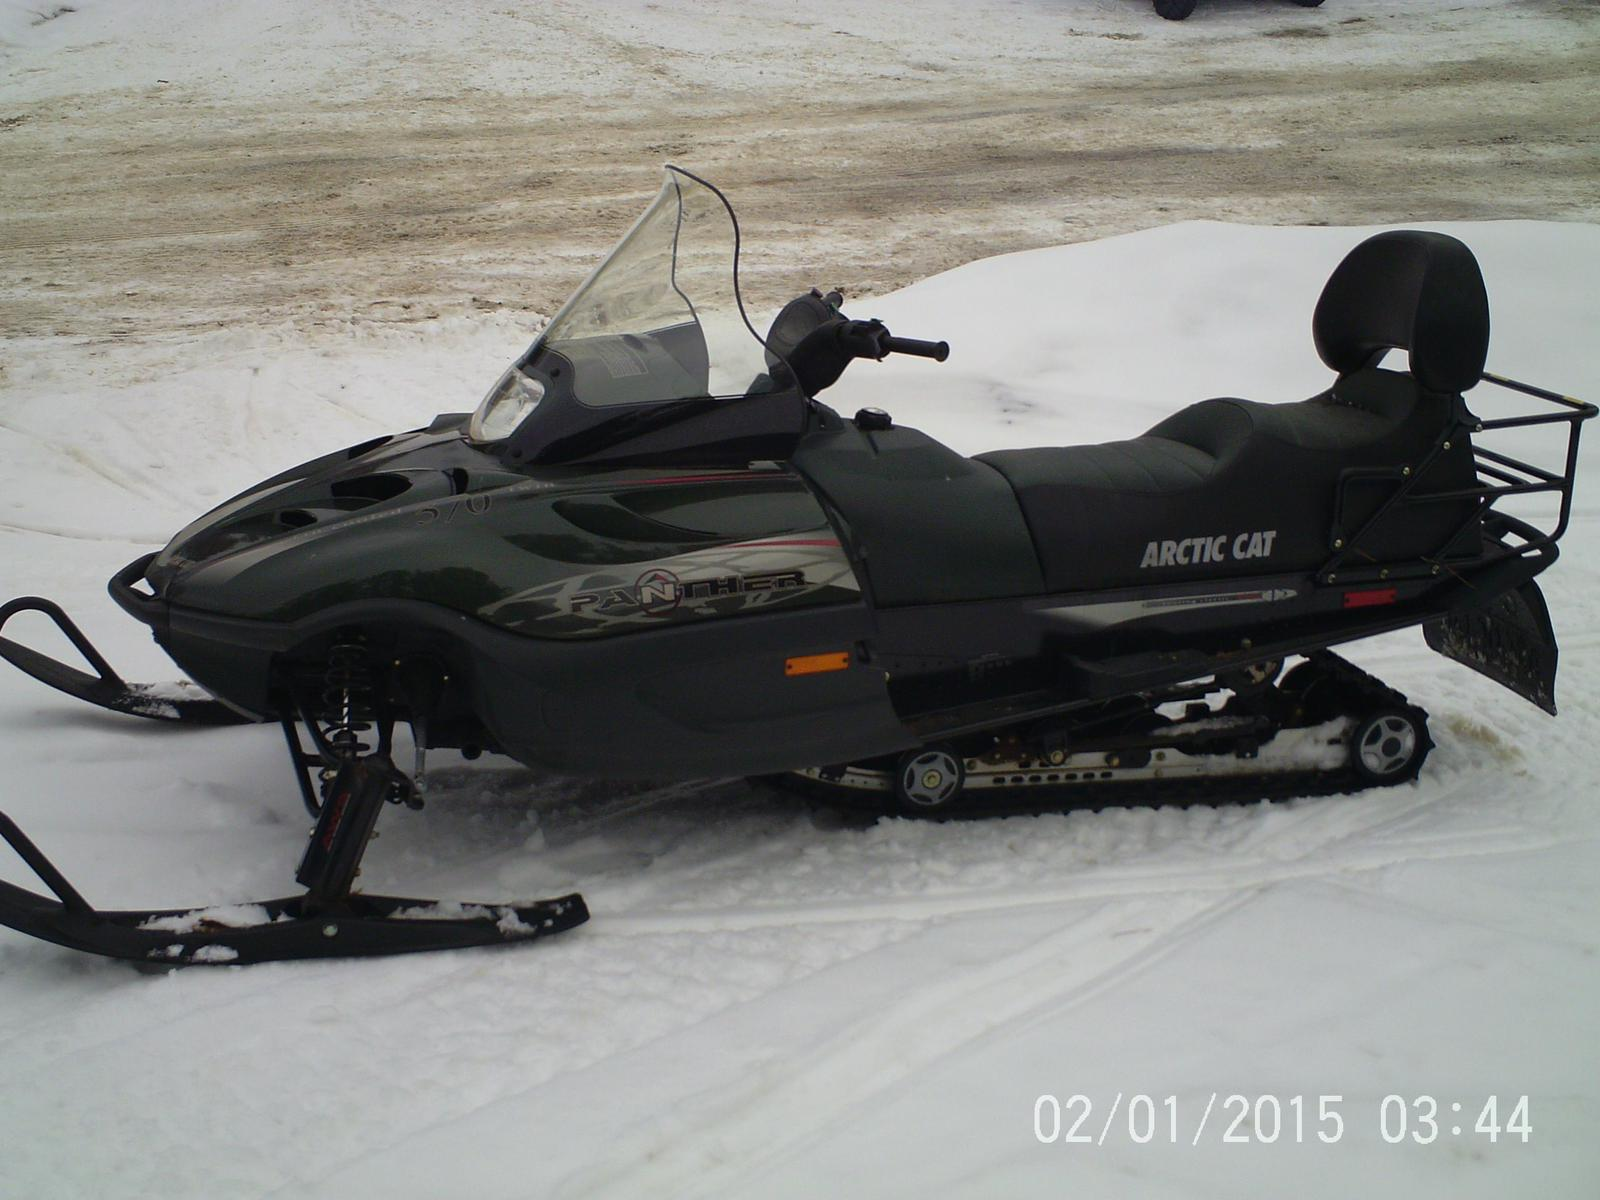 89 1992 Arctic Cat Panther 98 440 Wiring Diagram Reinvent Cougar Snowmobile Used Snowmobiles From Four Star Sports Webb Lake 1600x1200 Pantera